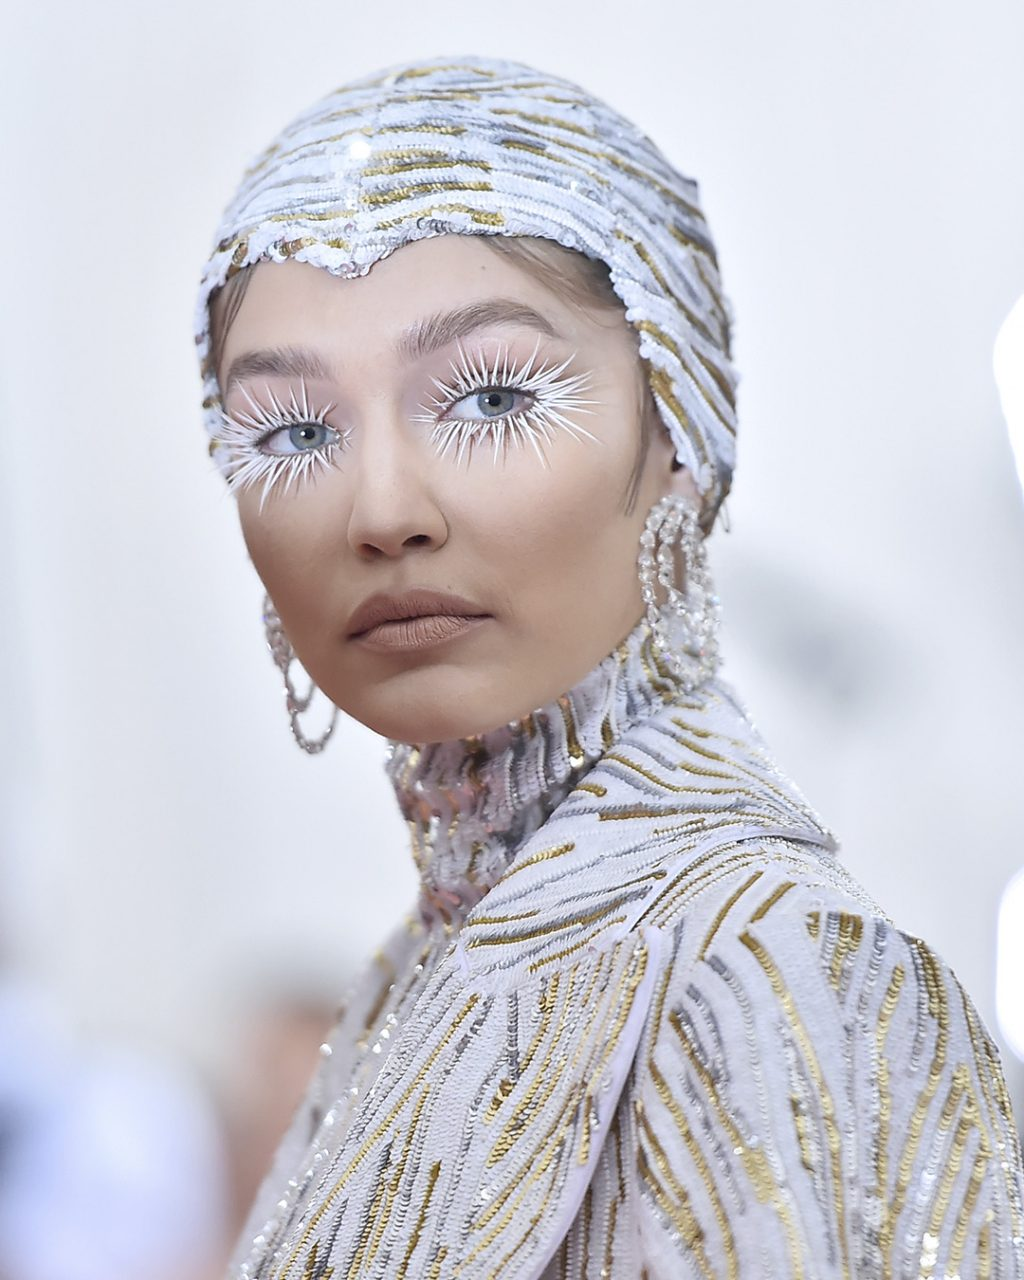 The Met Gala 2019 Beauty Looks That Left Us Speechless